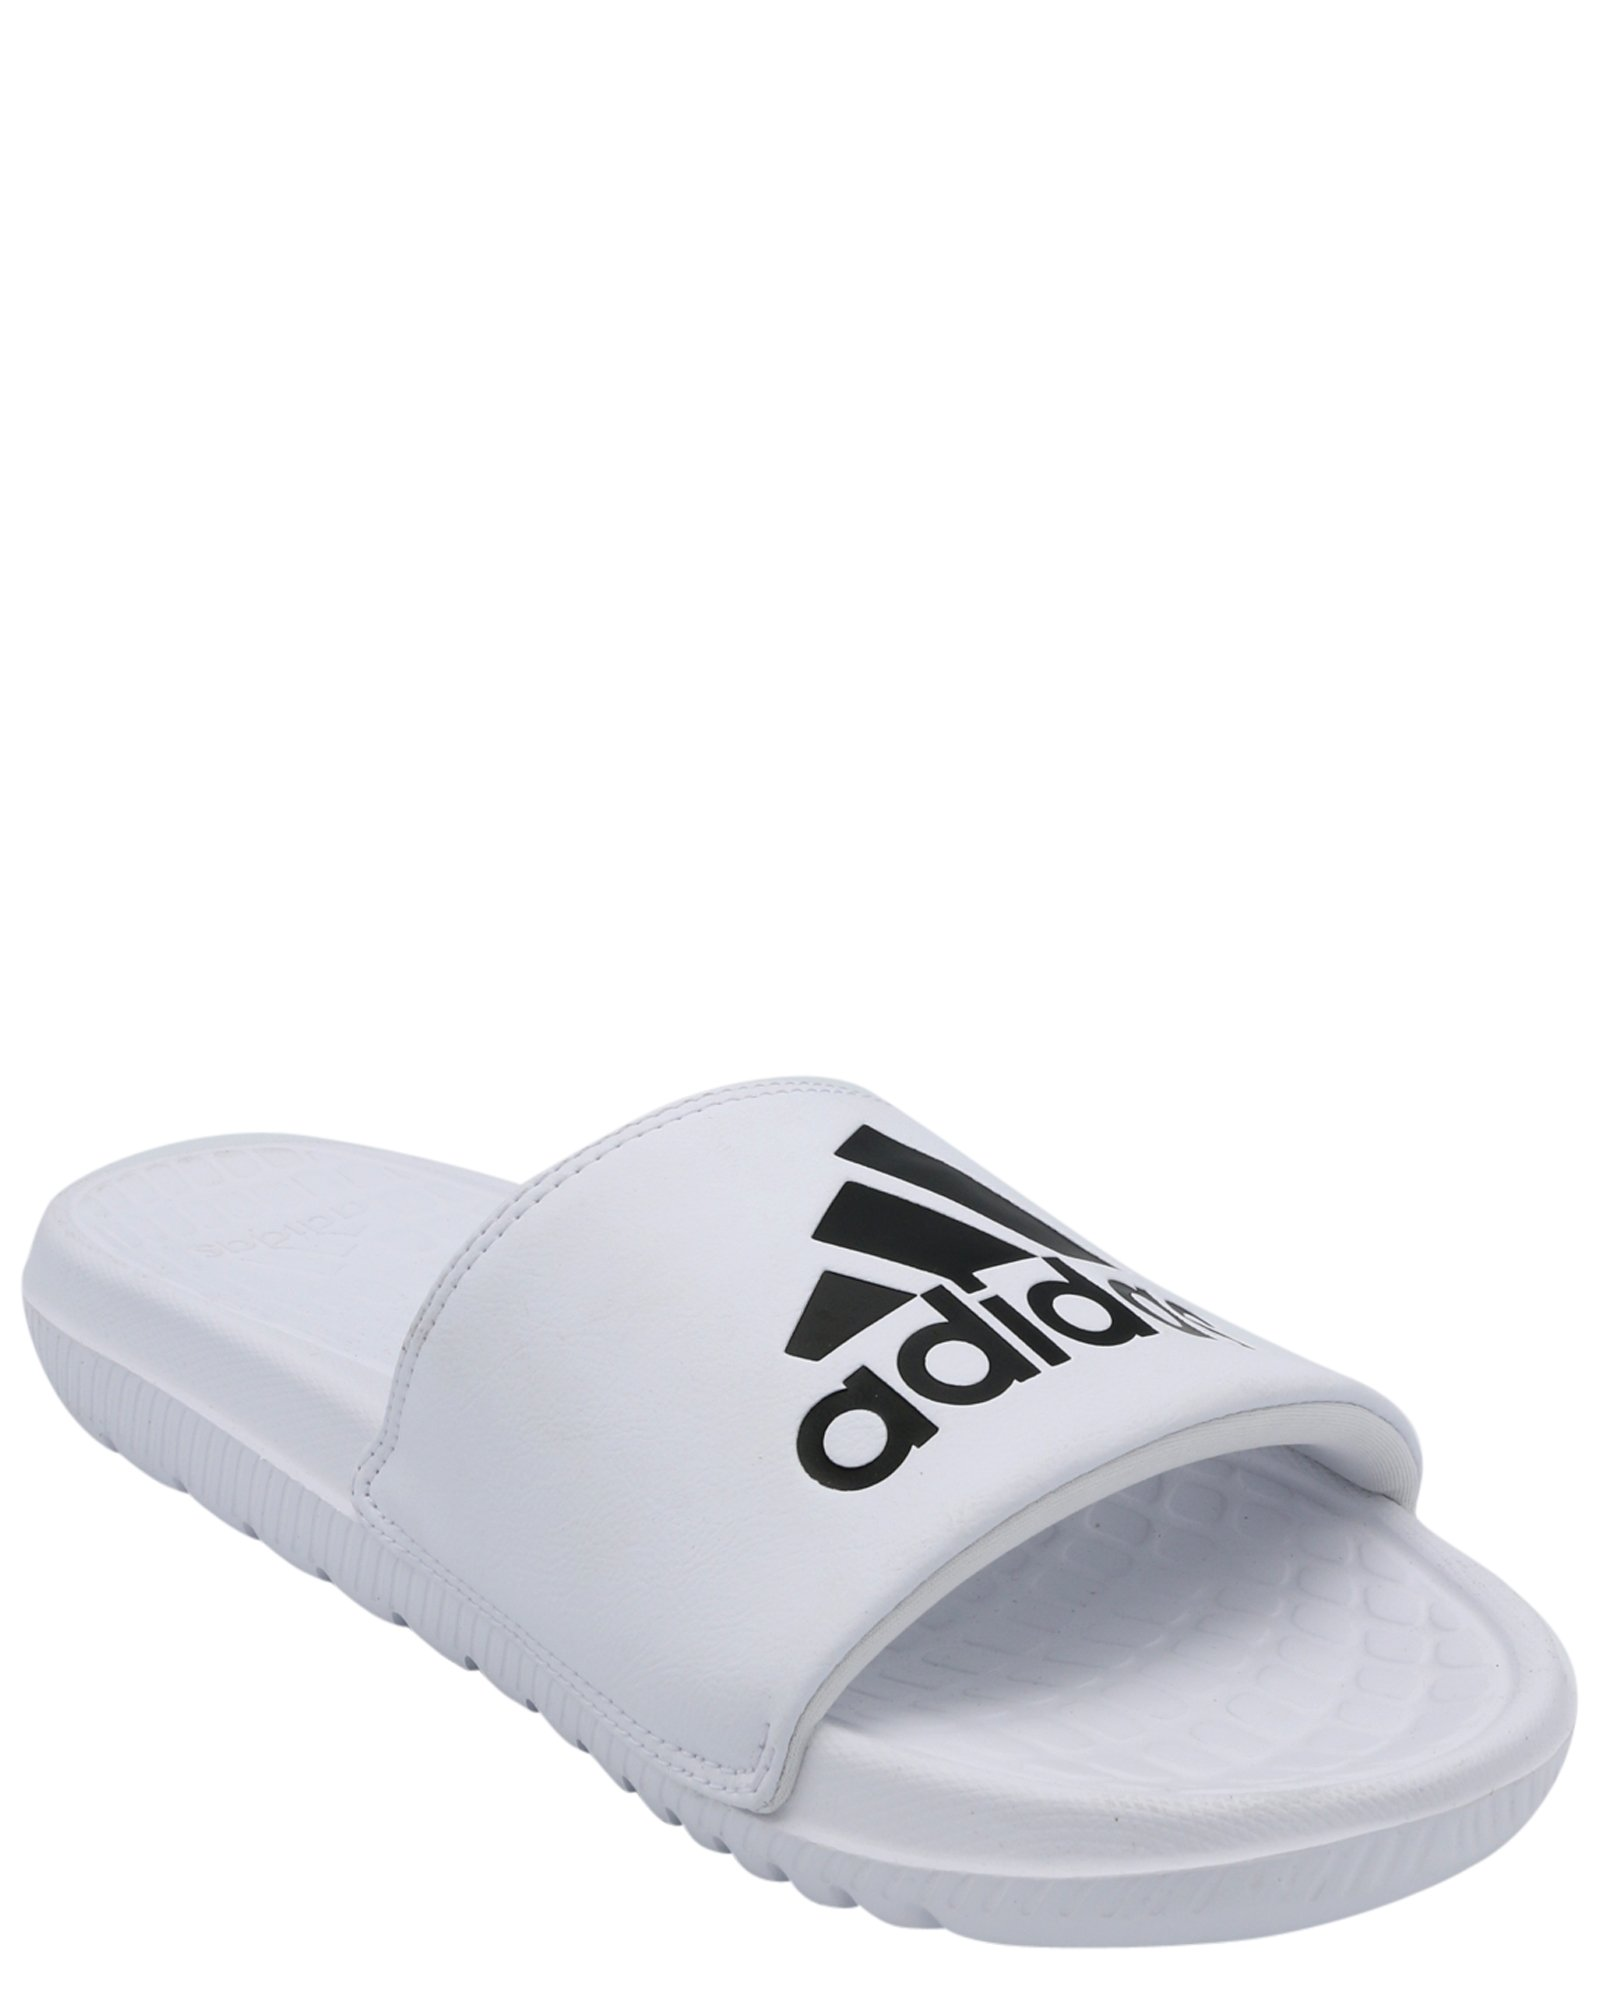 adidas Men's Voloomix Slide Sandal, White/Black/White, 10 M US